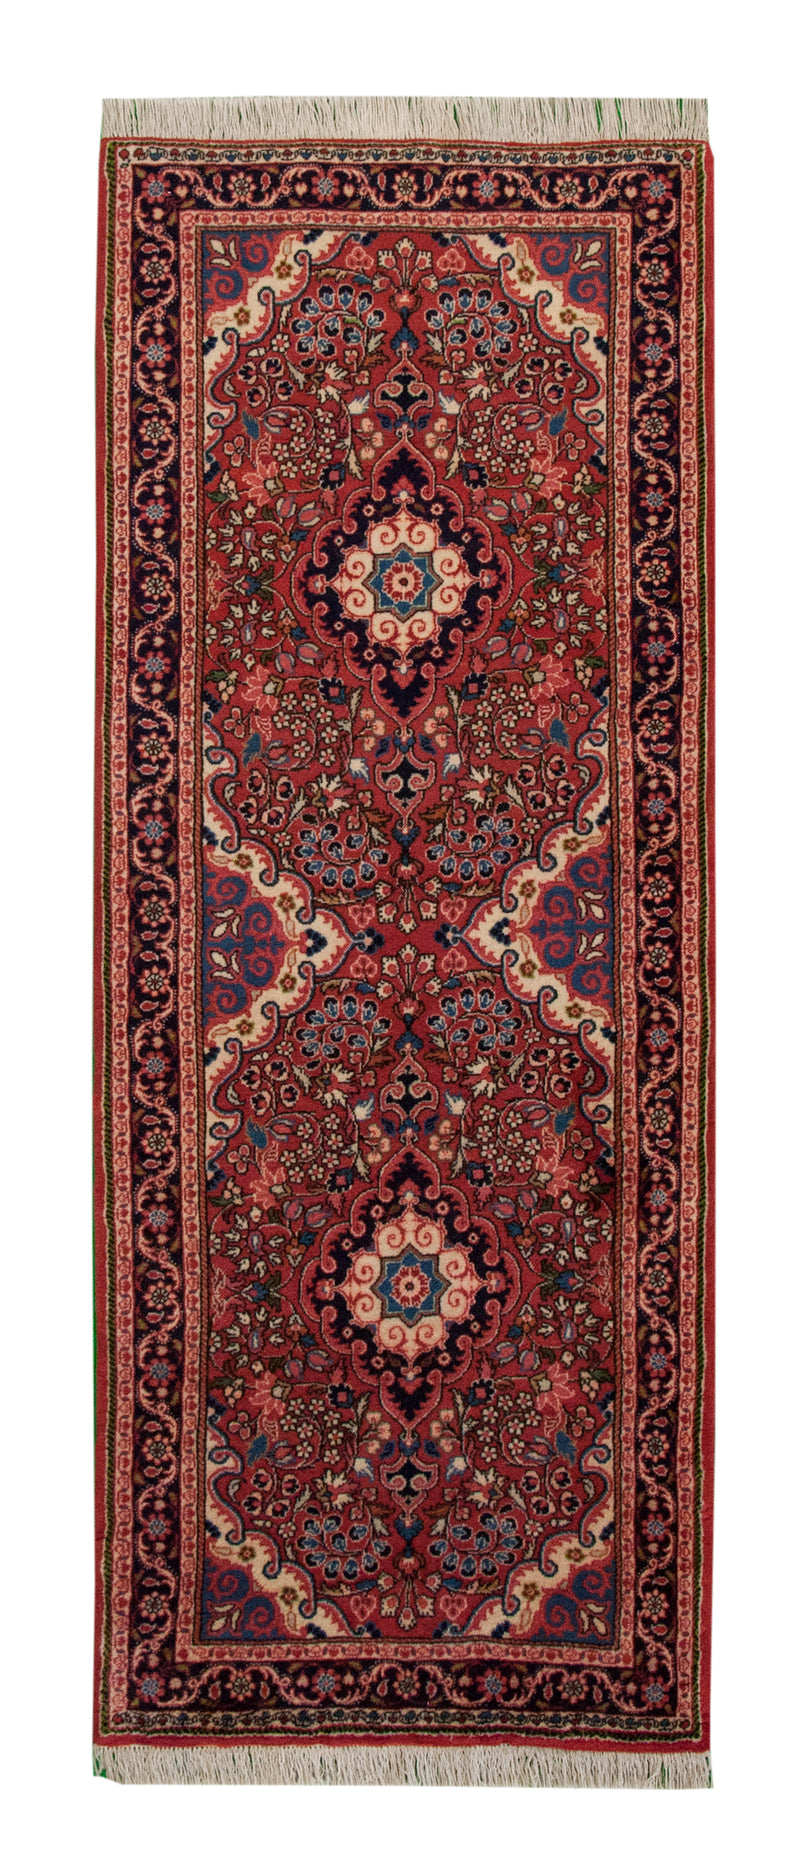 Sarouk Runner Red 2'5x6'4